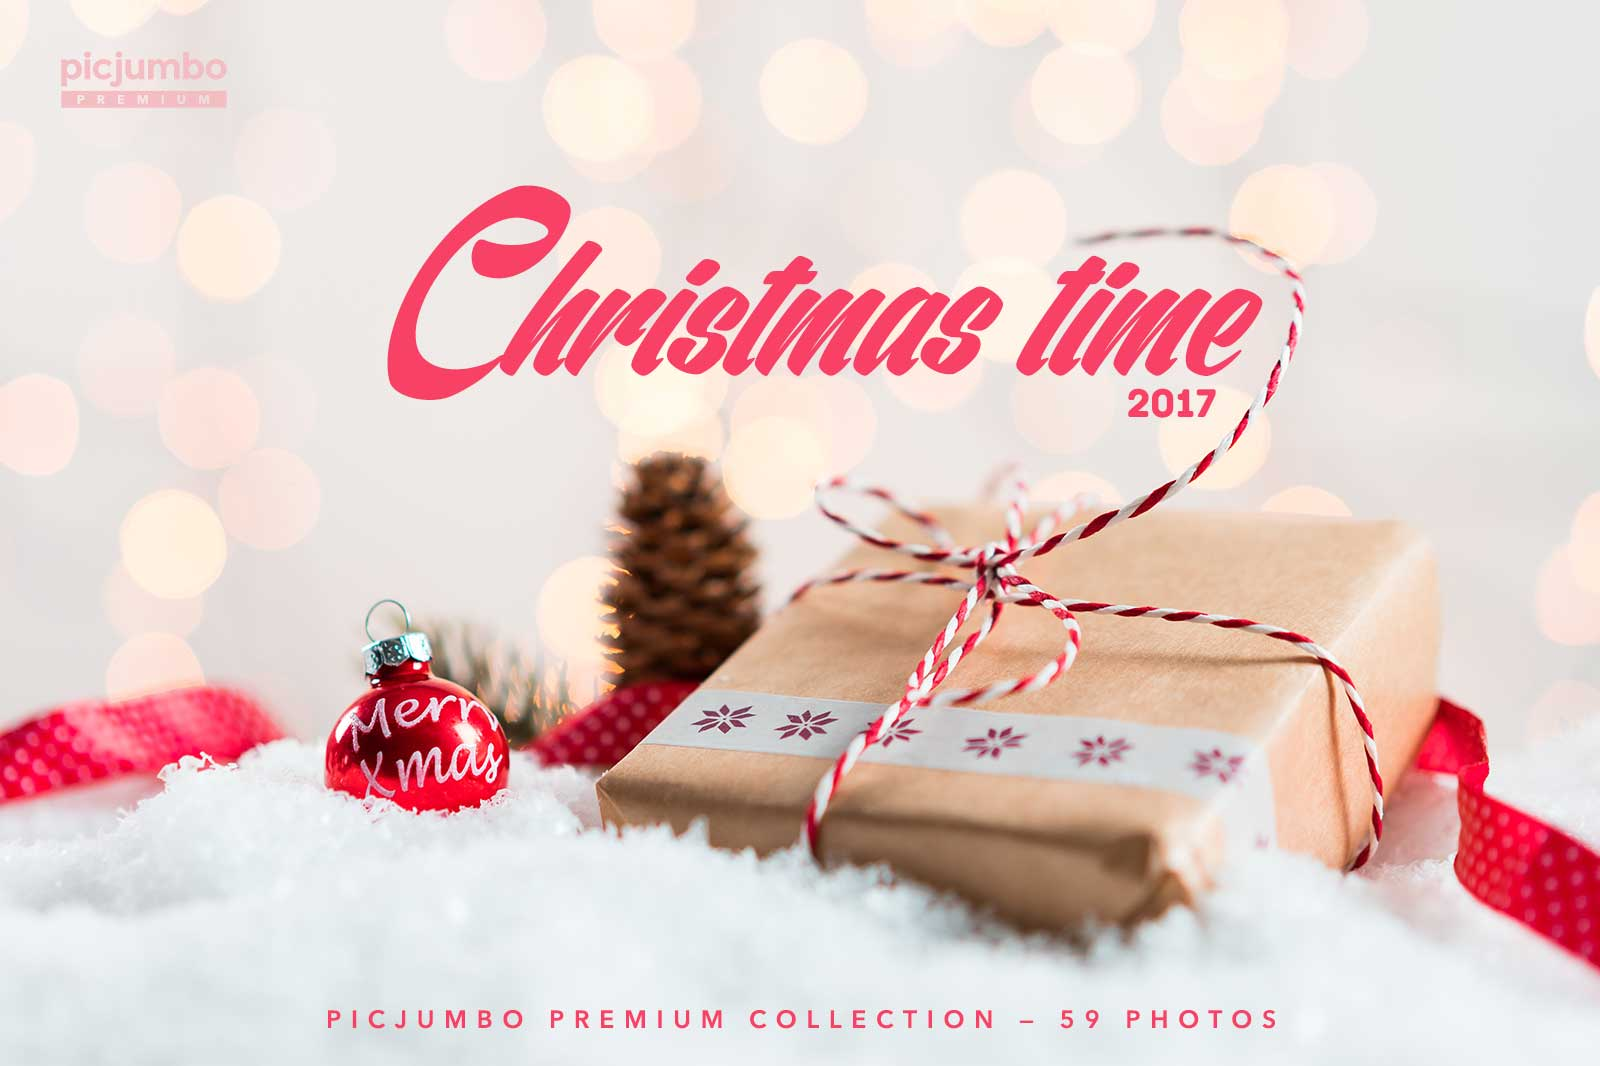 Christmas time 2017 — get it now in picjumbo PREMIUM!